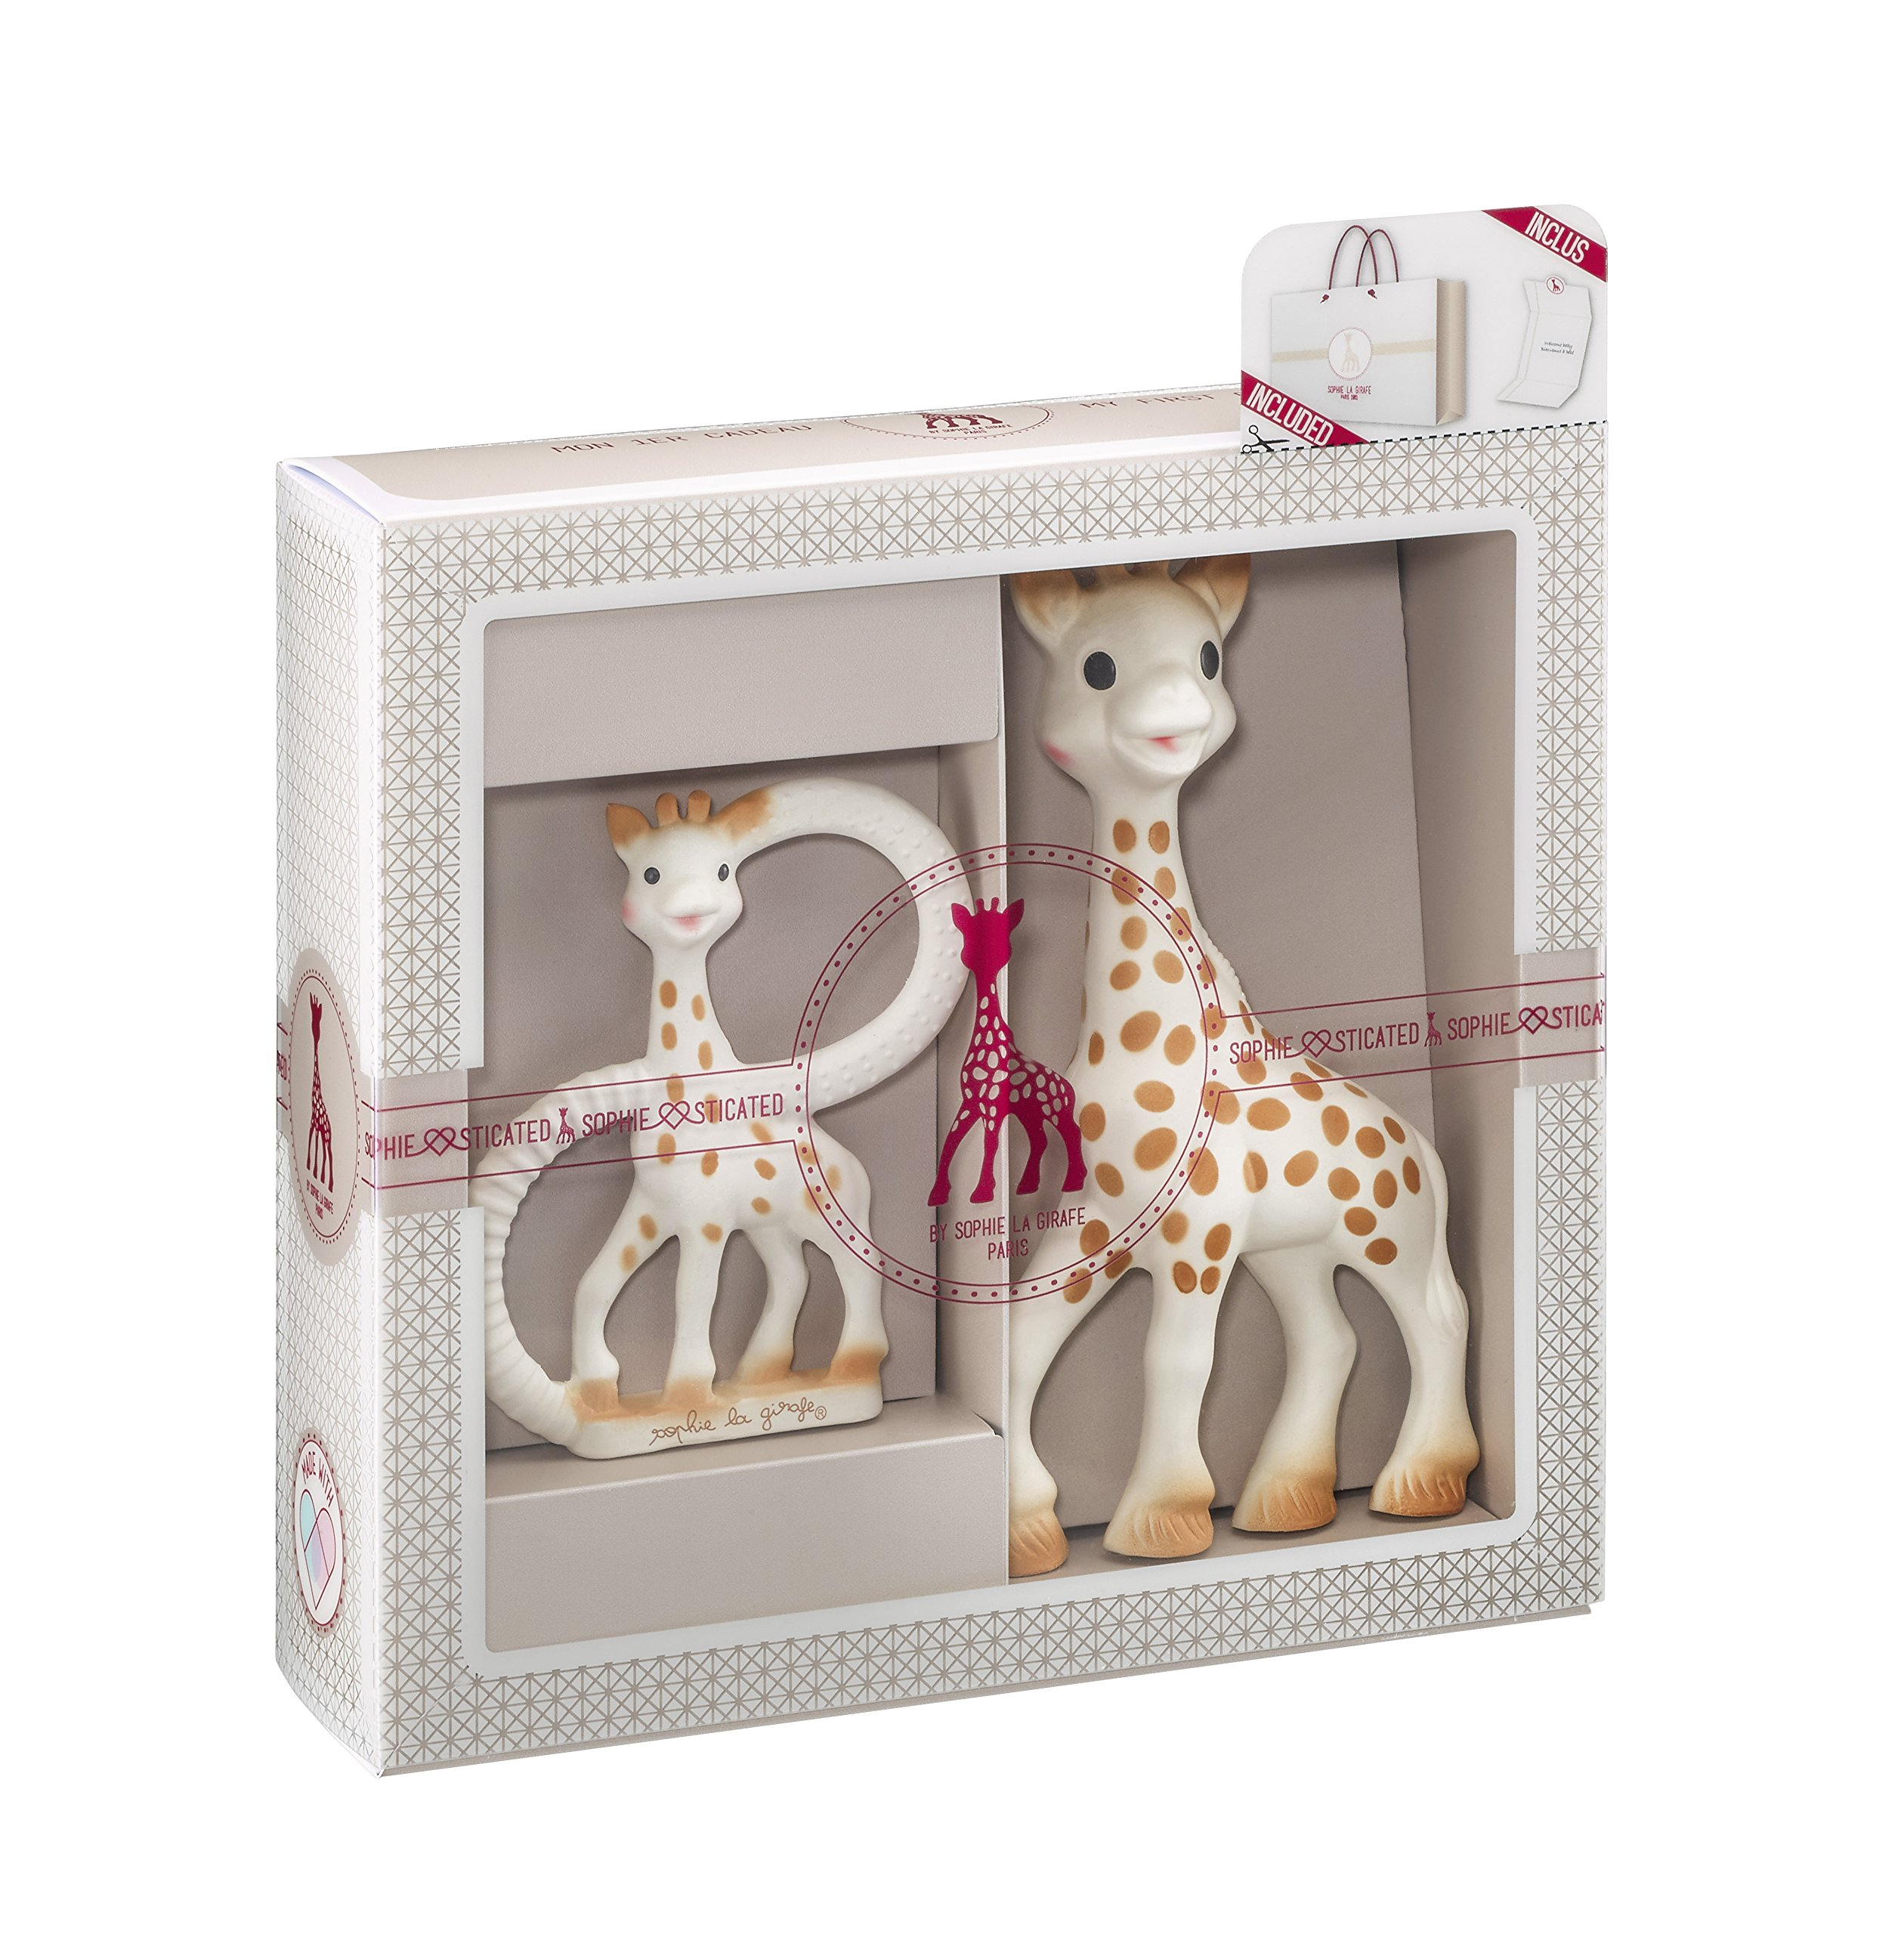 Vulli Sophie The Giraffe Sophiesticated Classical Creation Birth Gift Set Small #1- Teether & Toy by Calisson Inc- Systems Vulli